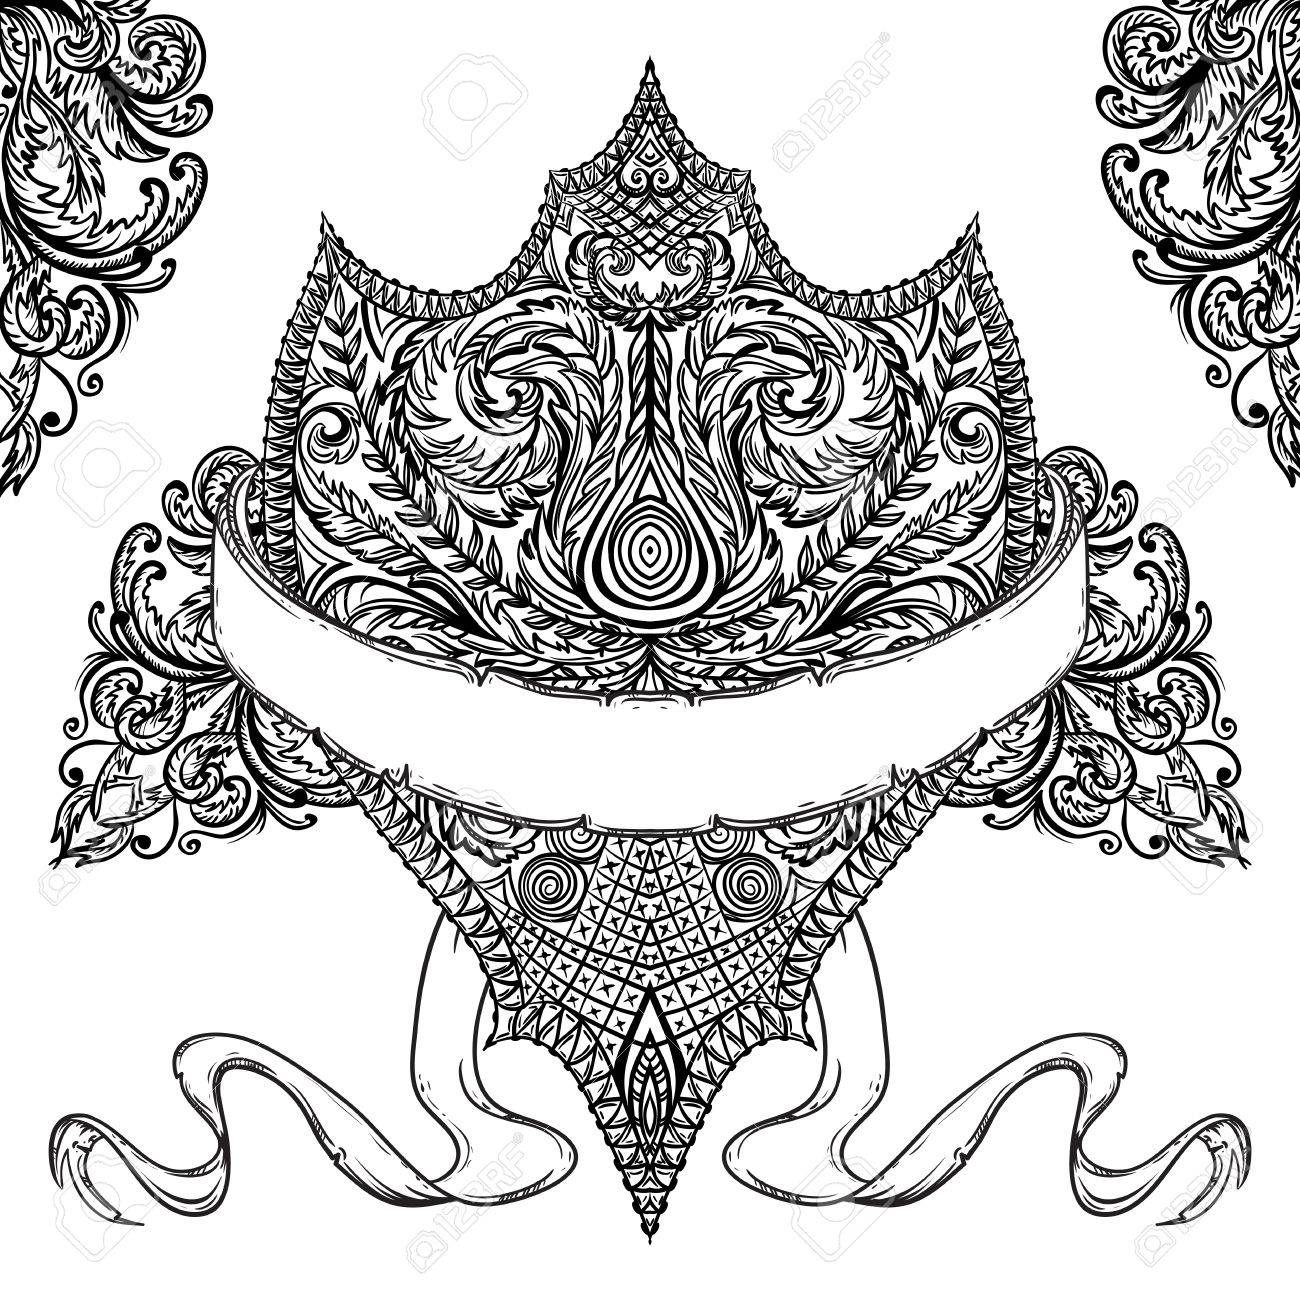 1300x1300 Ornate Medieval Shield And Ribbon Banner. Vintage Floral Highly